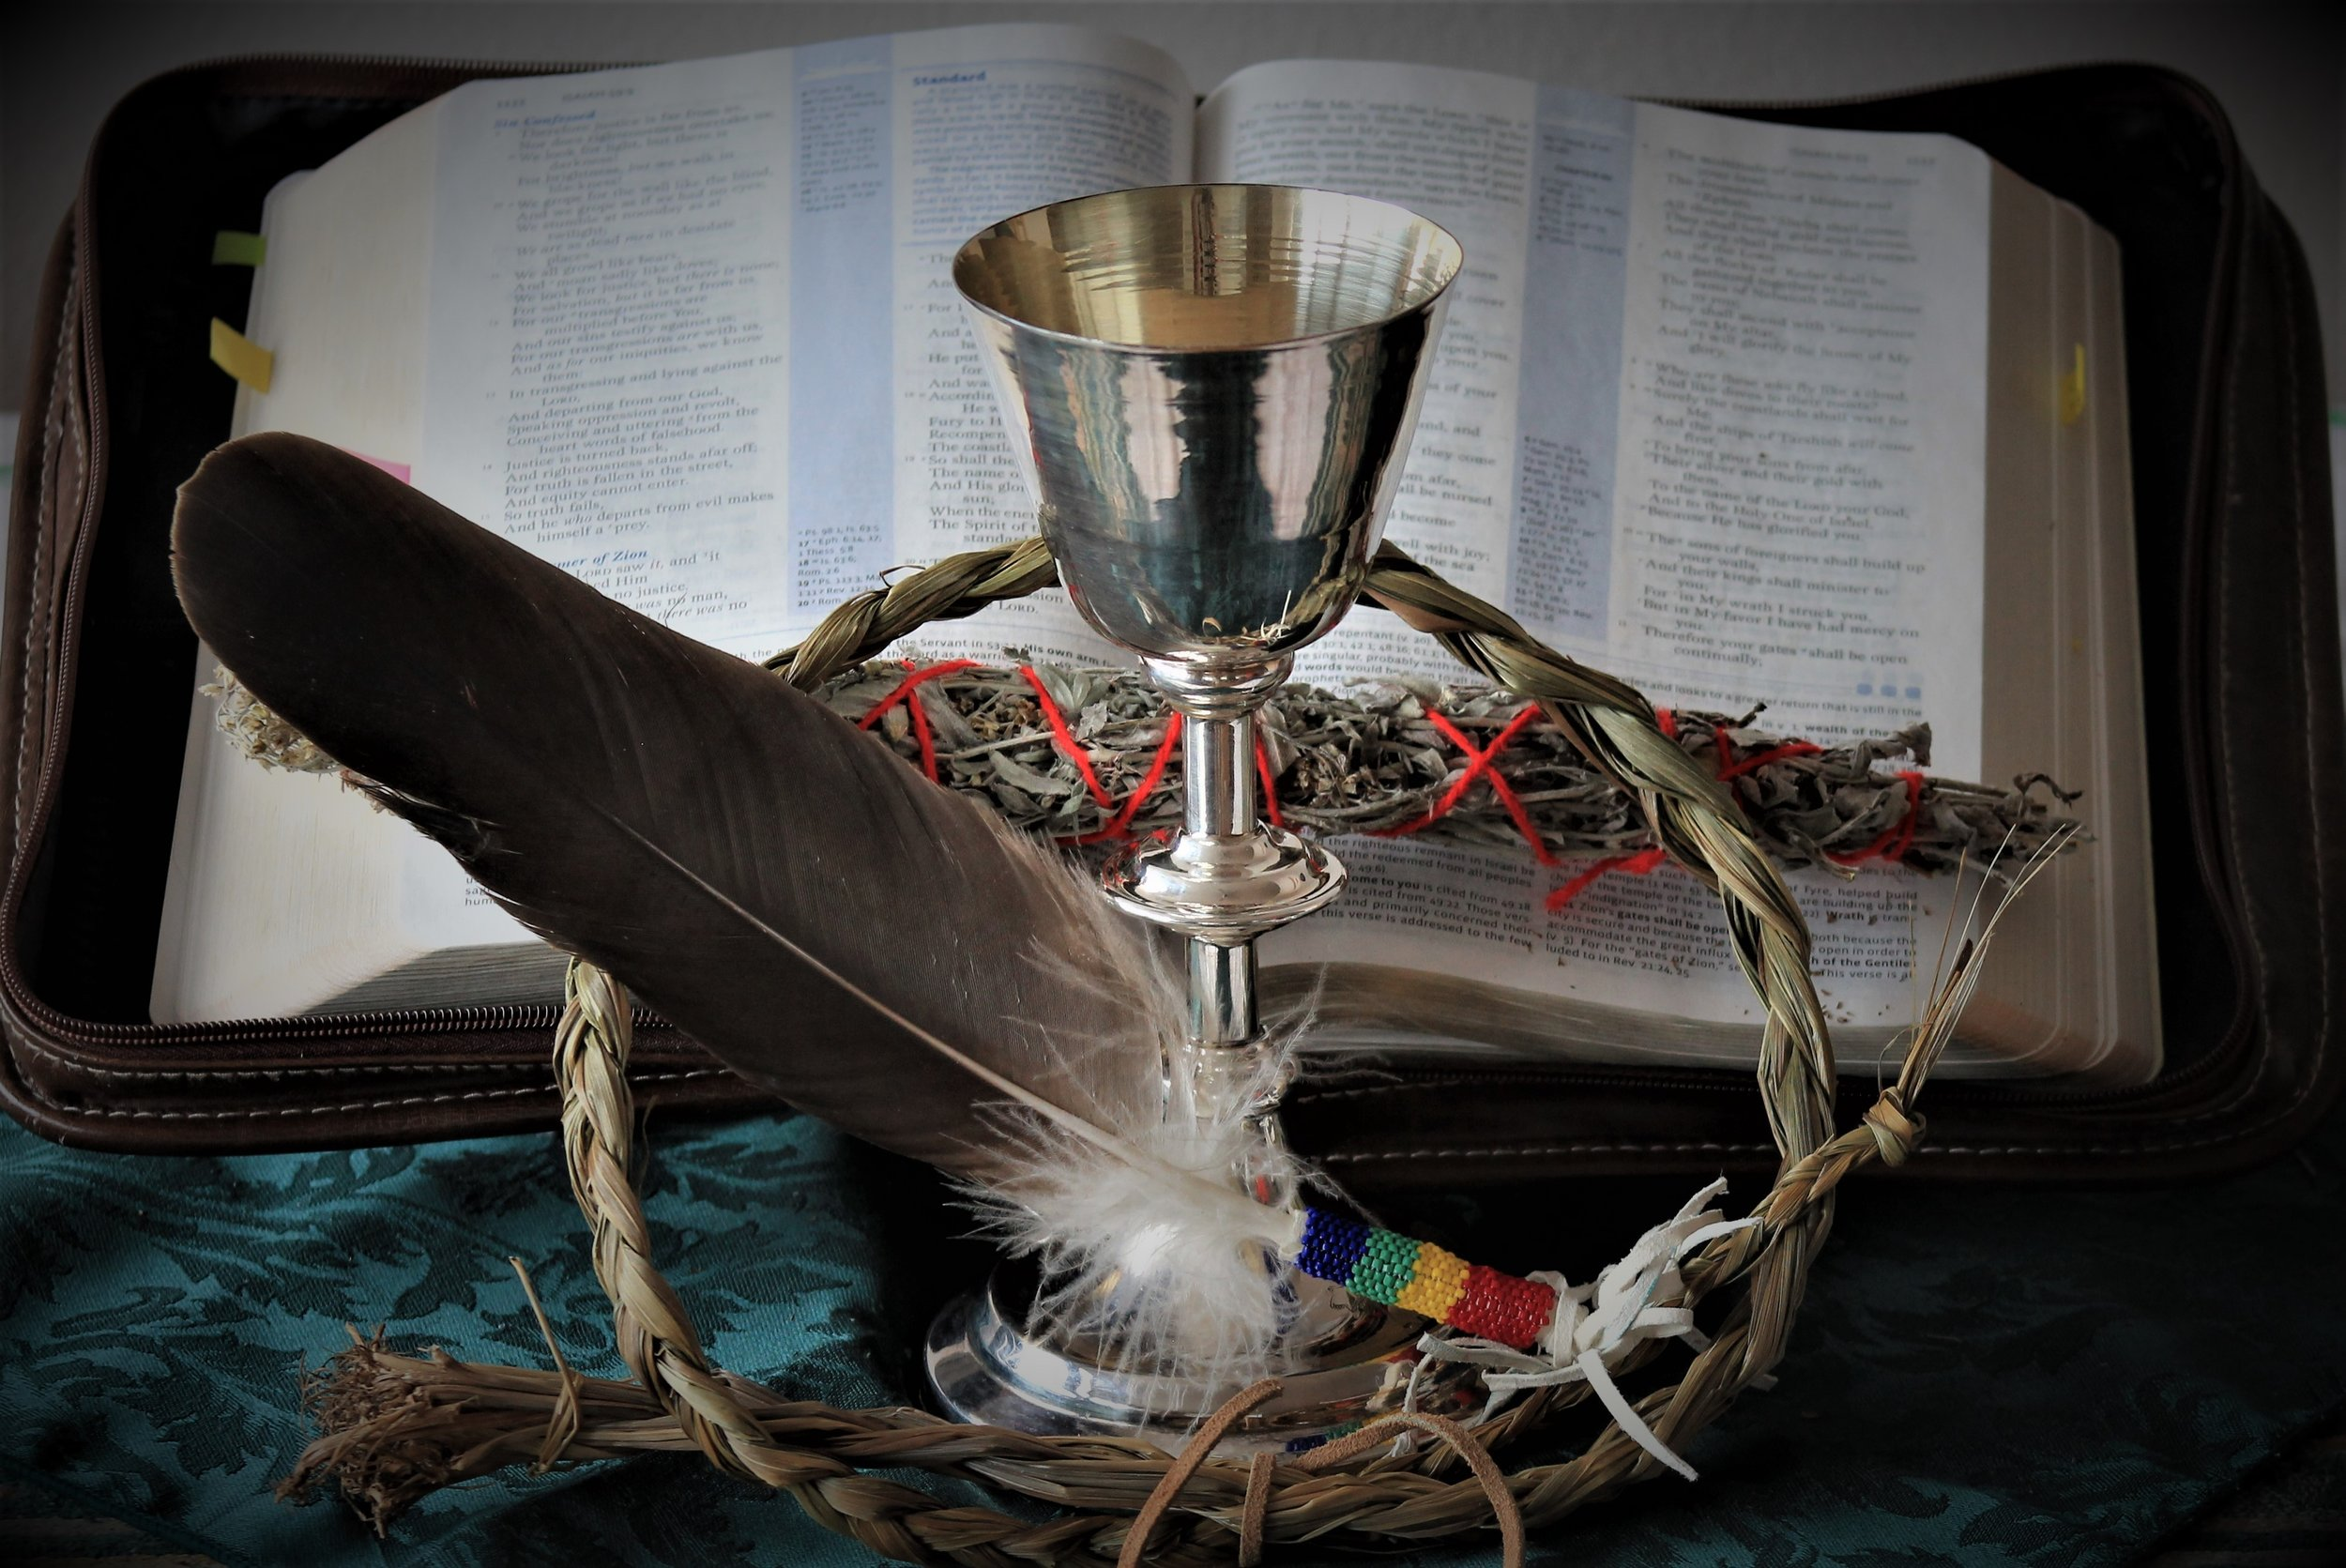 Bishop Chis Chalice invitation.jpg